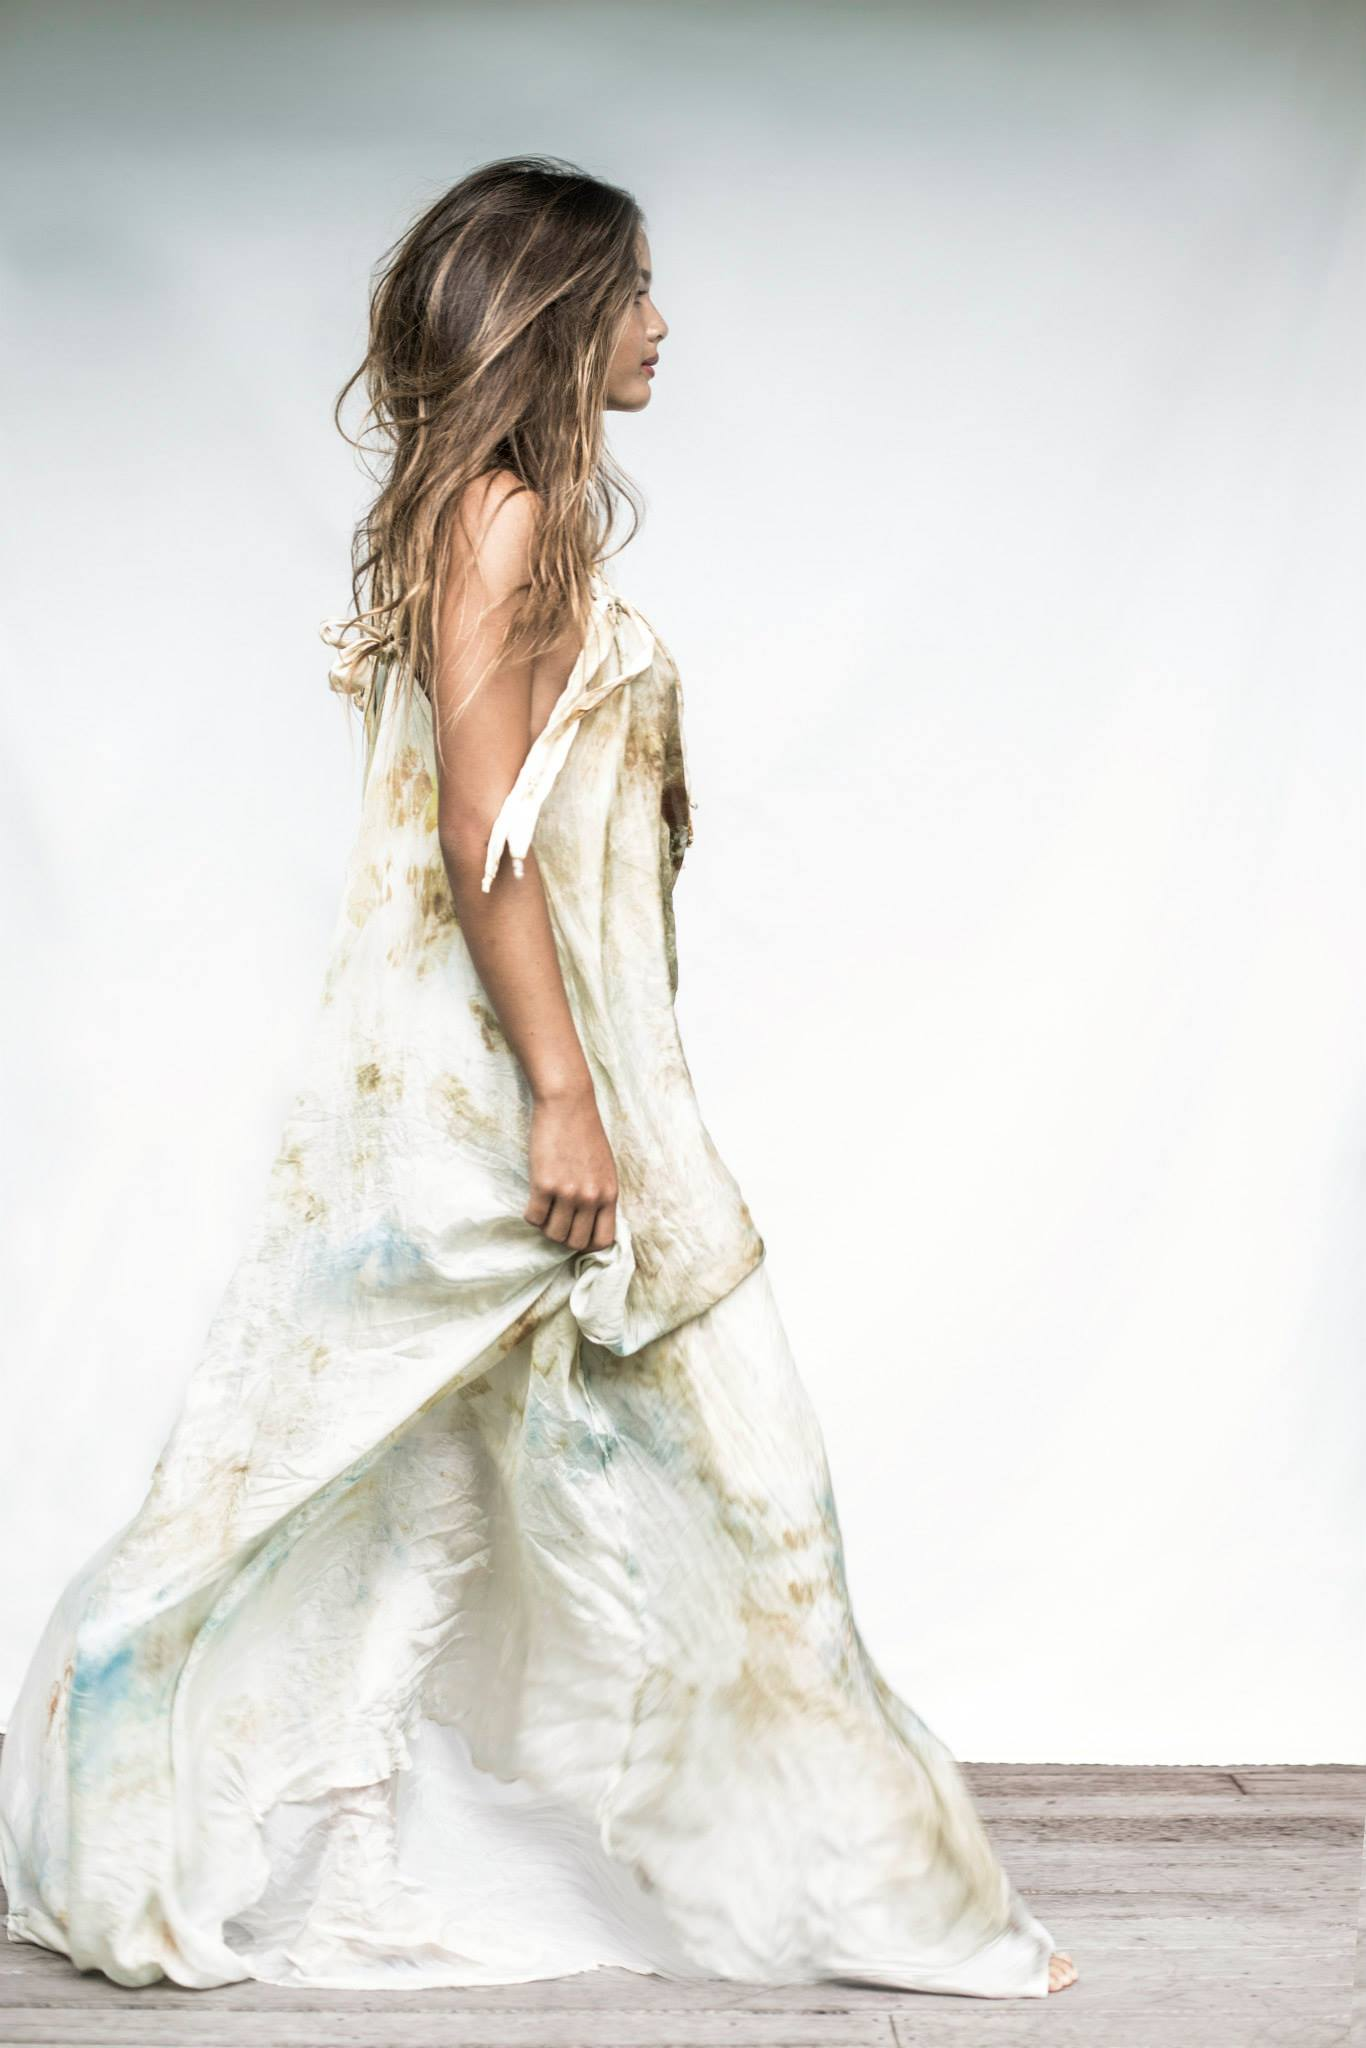 buried silk dress macrame Mimi Designs the top fashion image of the year in byron bay